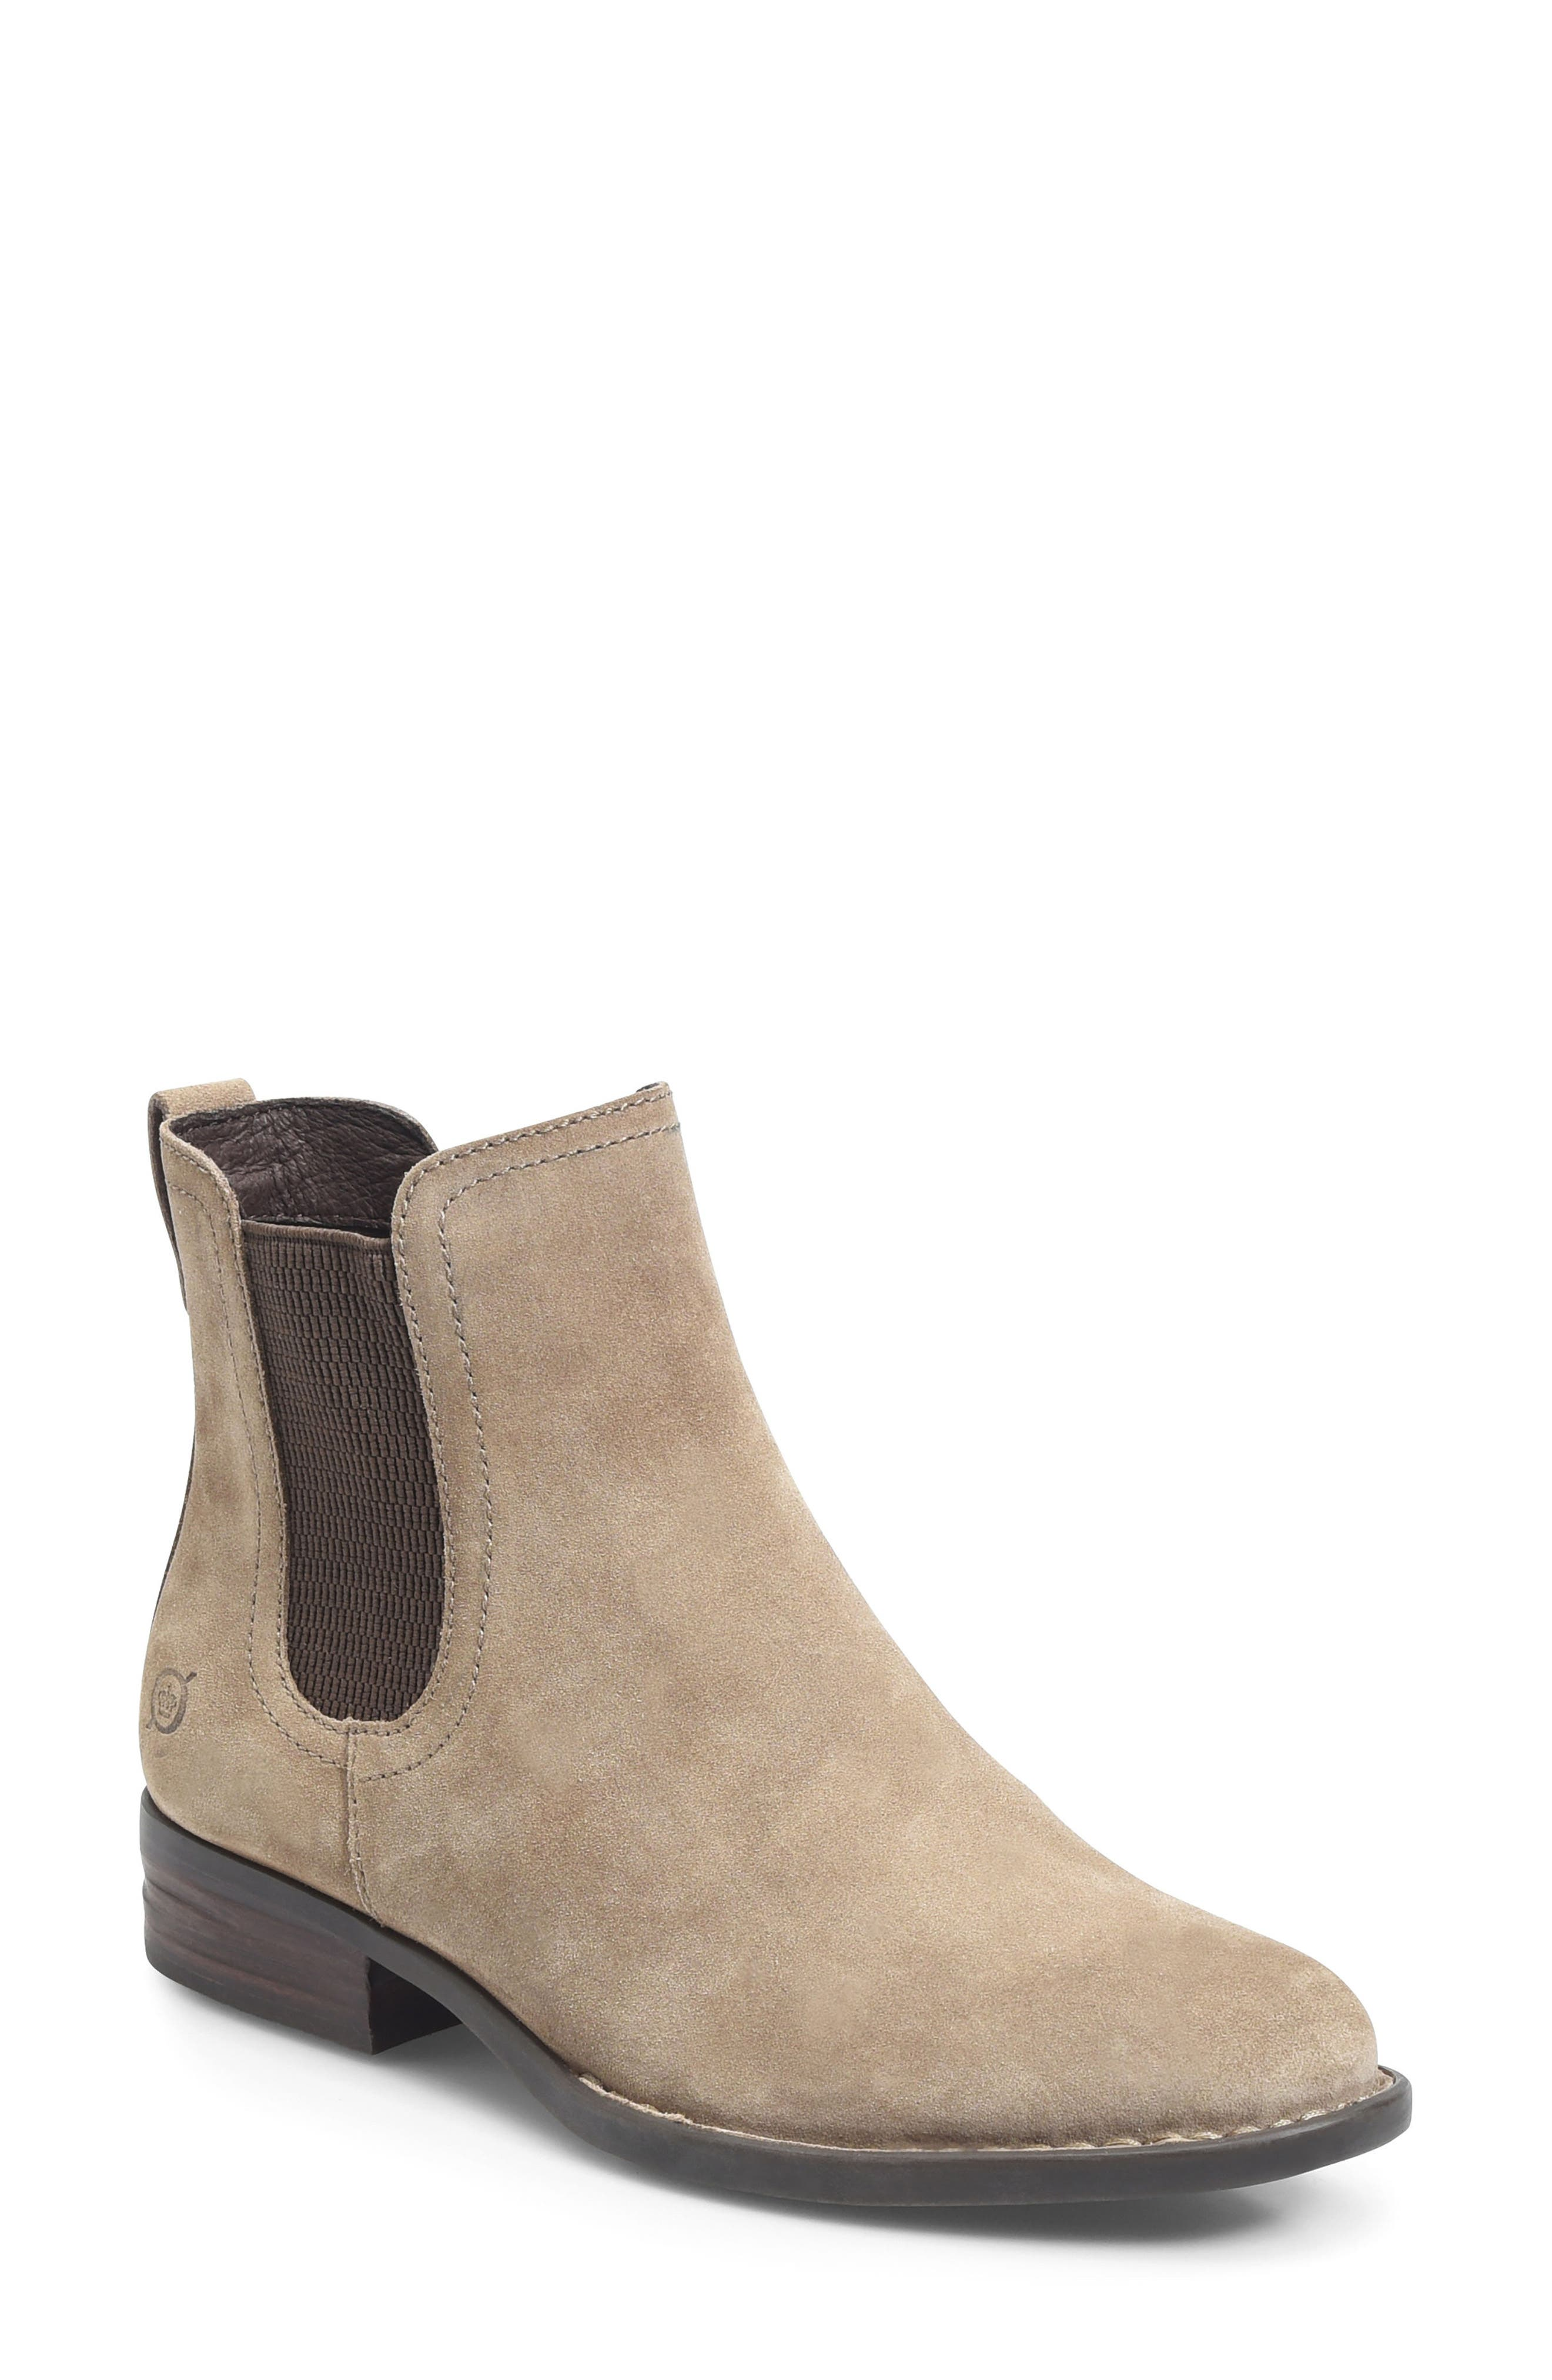 Casco Chelsea Boot,                             Main thumbnail 1, color,                             Taupe Suede